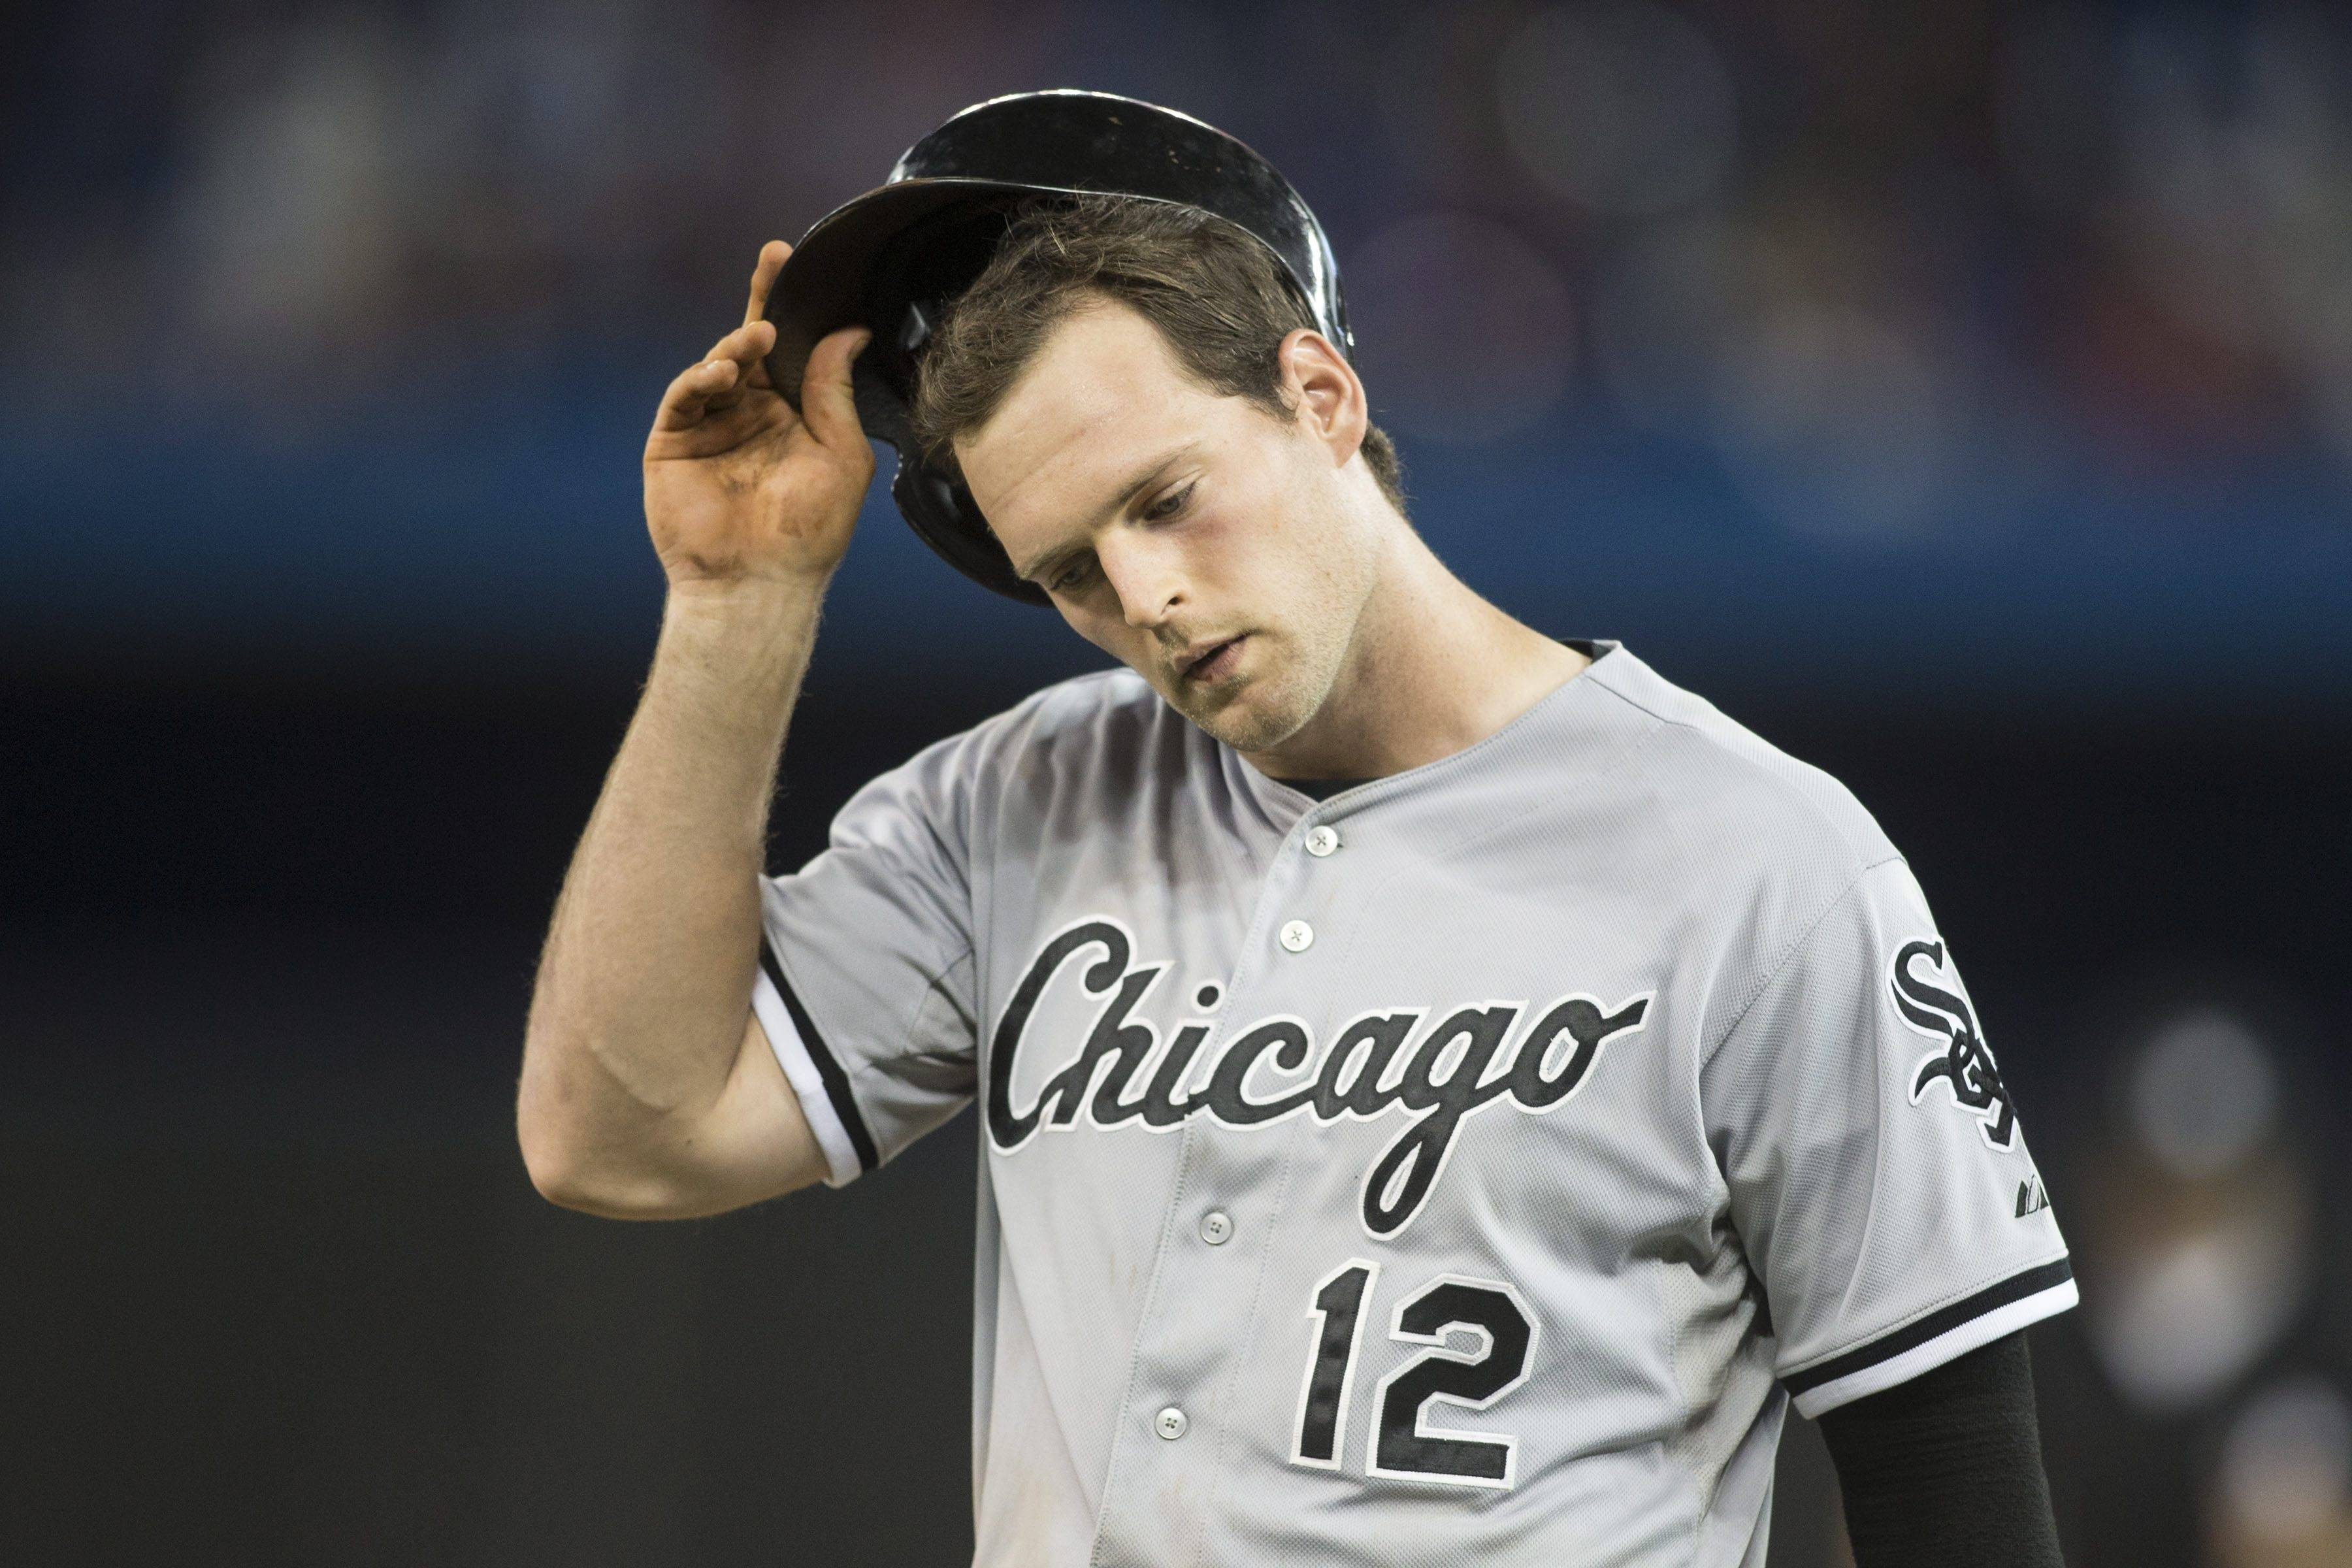 White Sox' Conor Gillaspie removes his helmet after grounding out to first in the ninth inning to complete his team's 0-7 loss to Toronto Blue Jays in baseball action in Toronto Thursday.